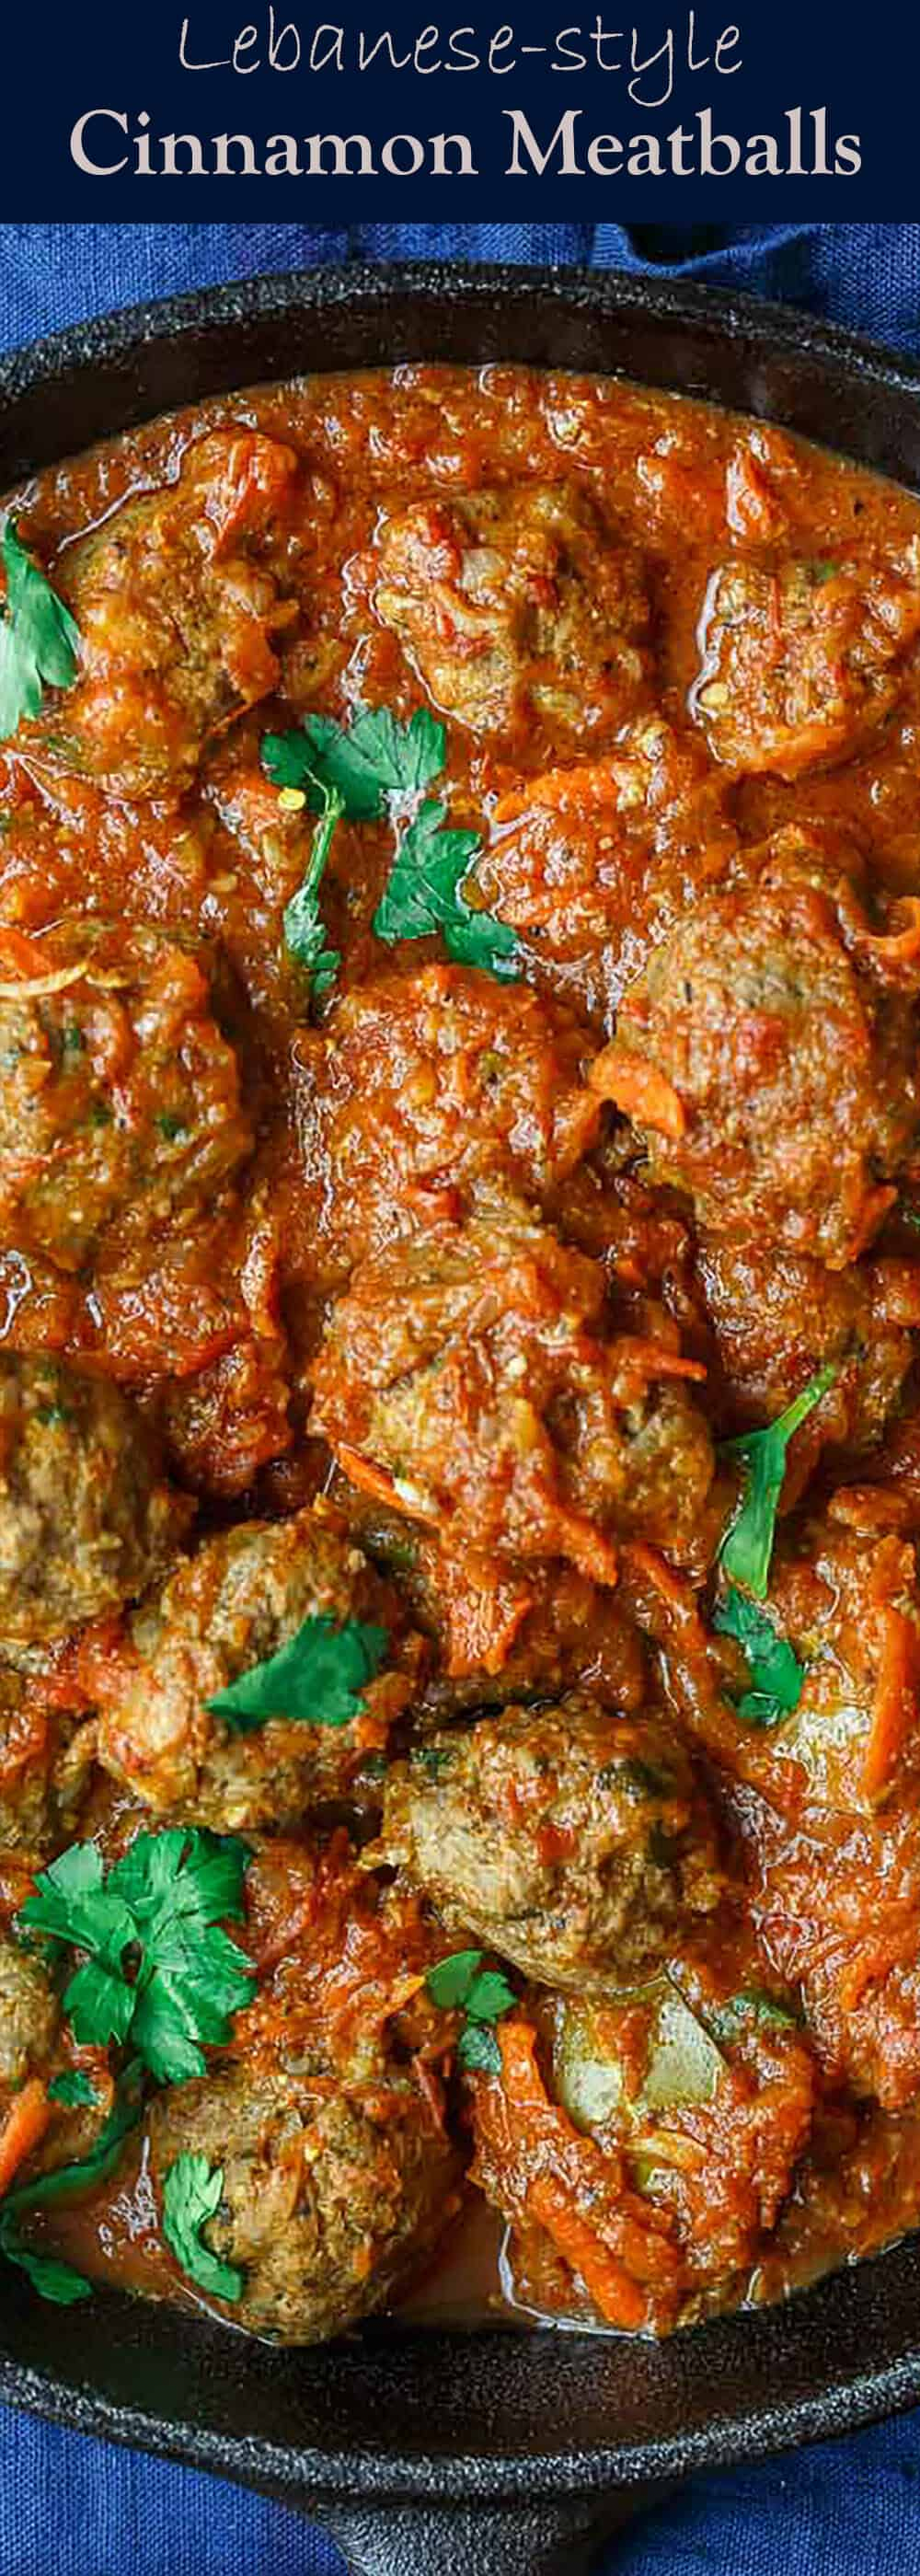 Lebanese-Style Meatballs Recipe in Tomato Sauce | The Mediterranean Dish. Juicy, tender meatballs, prepared Lebanese-style with notes of cinnamon and allspice, then braised in a tasty, thick tomato sauce. A couple simple ingredients take this meatballs recipe over the top. From TheMediterraneanDish.com #easyrecipe #meatballs #mediterraneanrecipe #mediterraneandiet #lebanese #meatballsrecipe #onepot